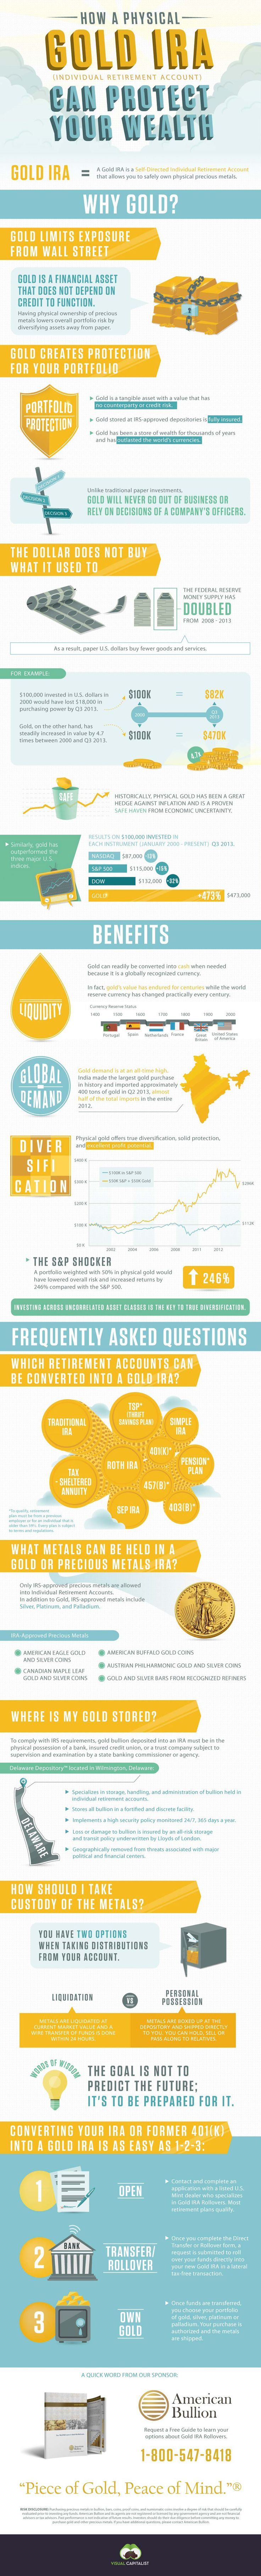 "Retirement Investing in Gold : A guide for new investors, showing them how buying physical gold can diversify their portfolio and serve as a safe long-term investment. The infographic features popular reasons for purchasing gold, the benefits of owning gold, and several ""frequently asked"" questions.  > http://infographicsmania.com/retirement-investing-in-gold/?utm_source=Pinterest&utm_medium=ZAKKAS&utm_campaign=SNAP"